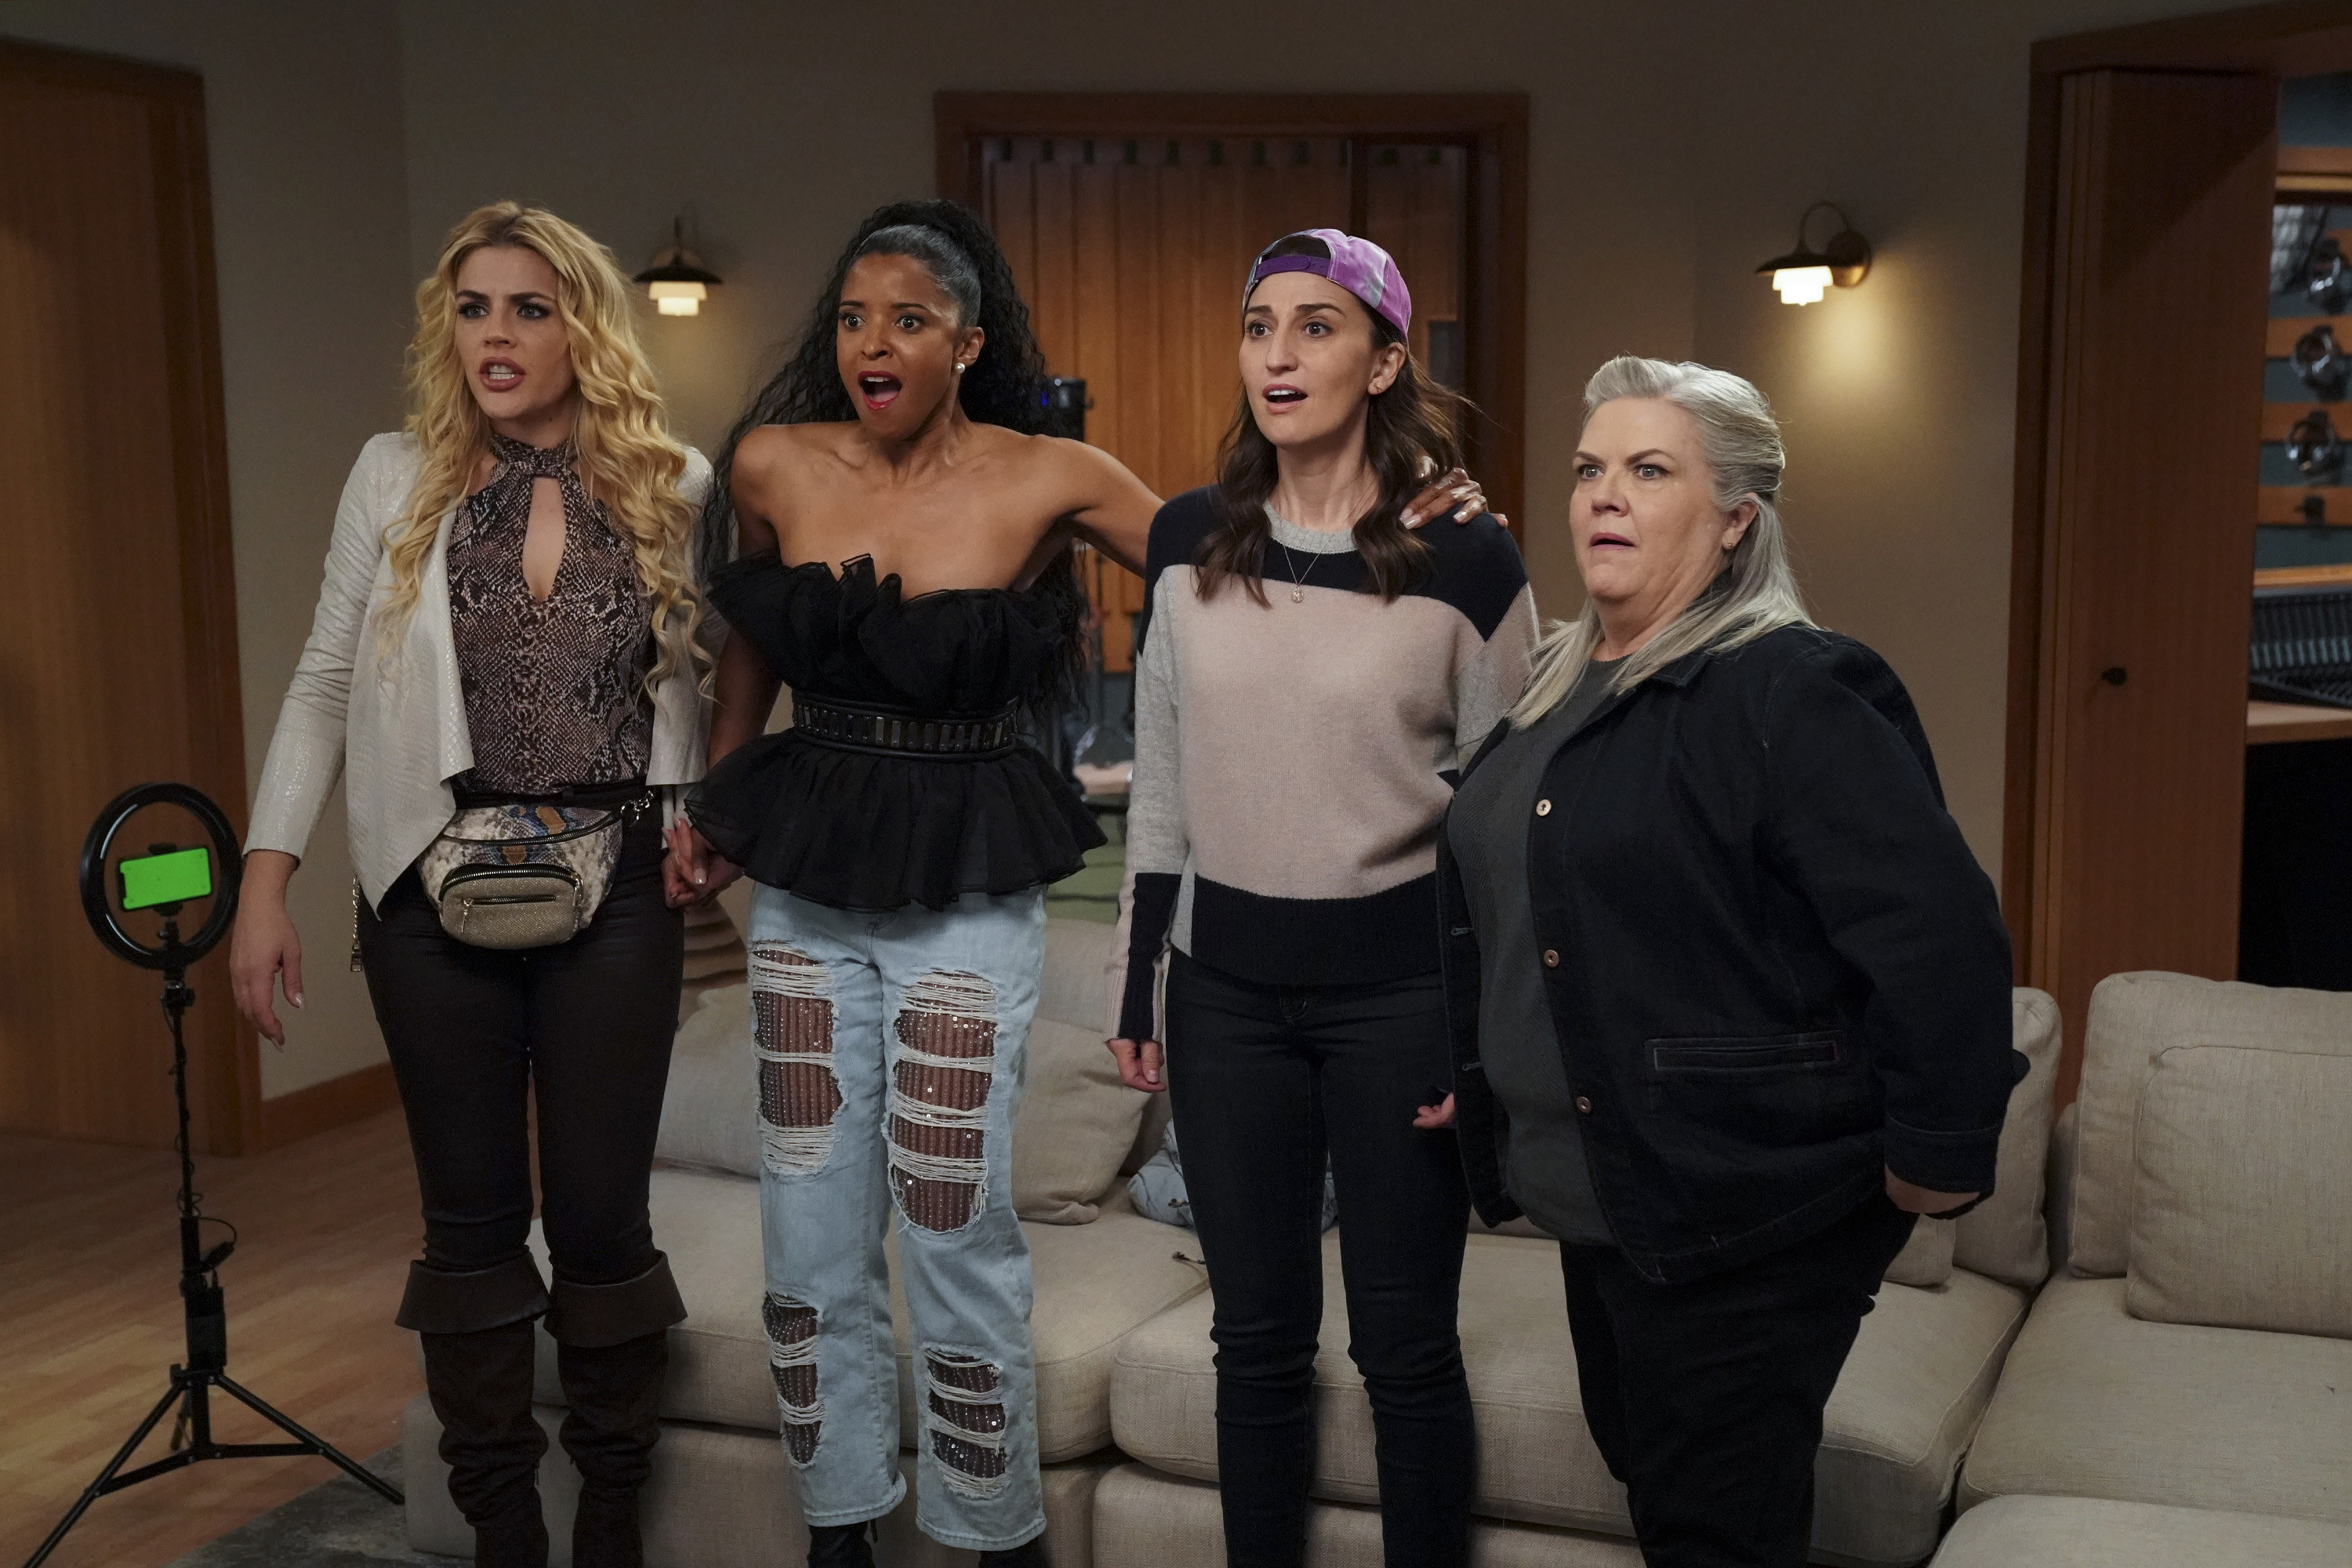 """Busy Philipps, Renée Elise Goldsberry, Sara Bareilles, and Paula Pell look surprised in a still image from the third episode of """"Girls5eva"""""""